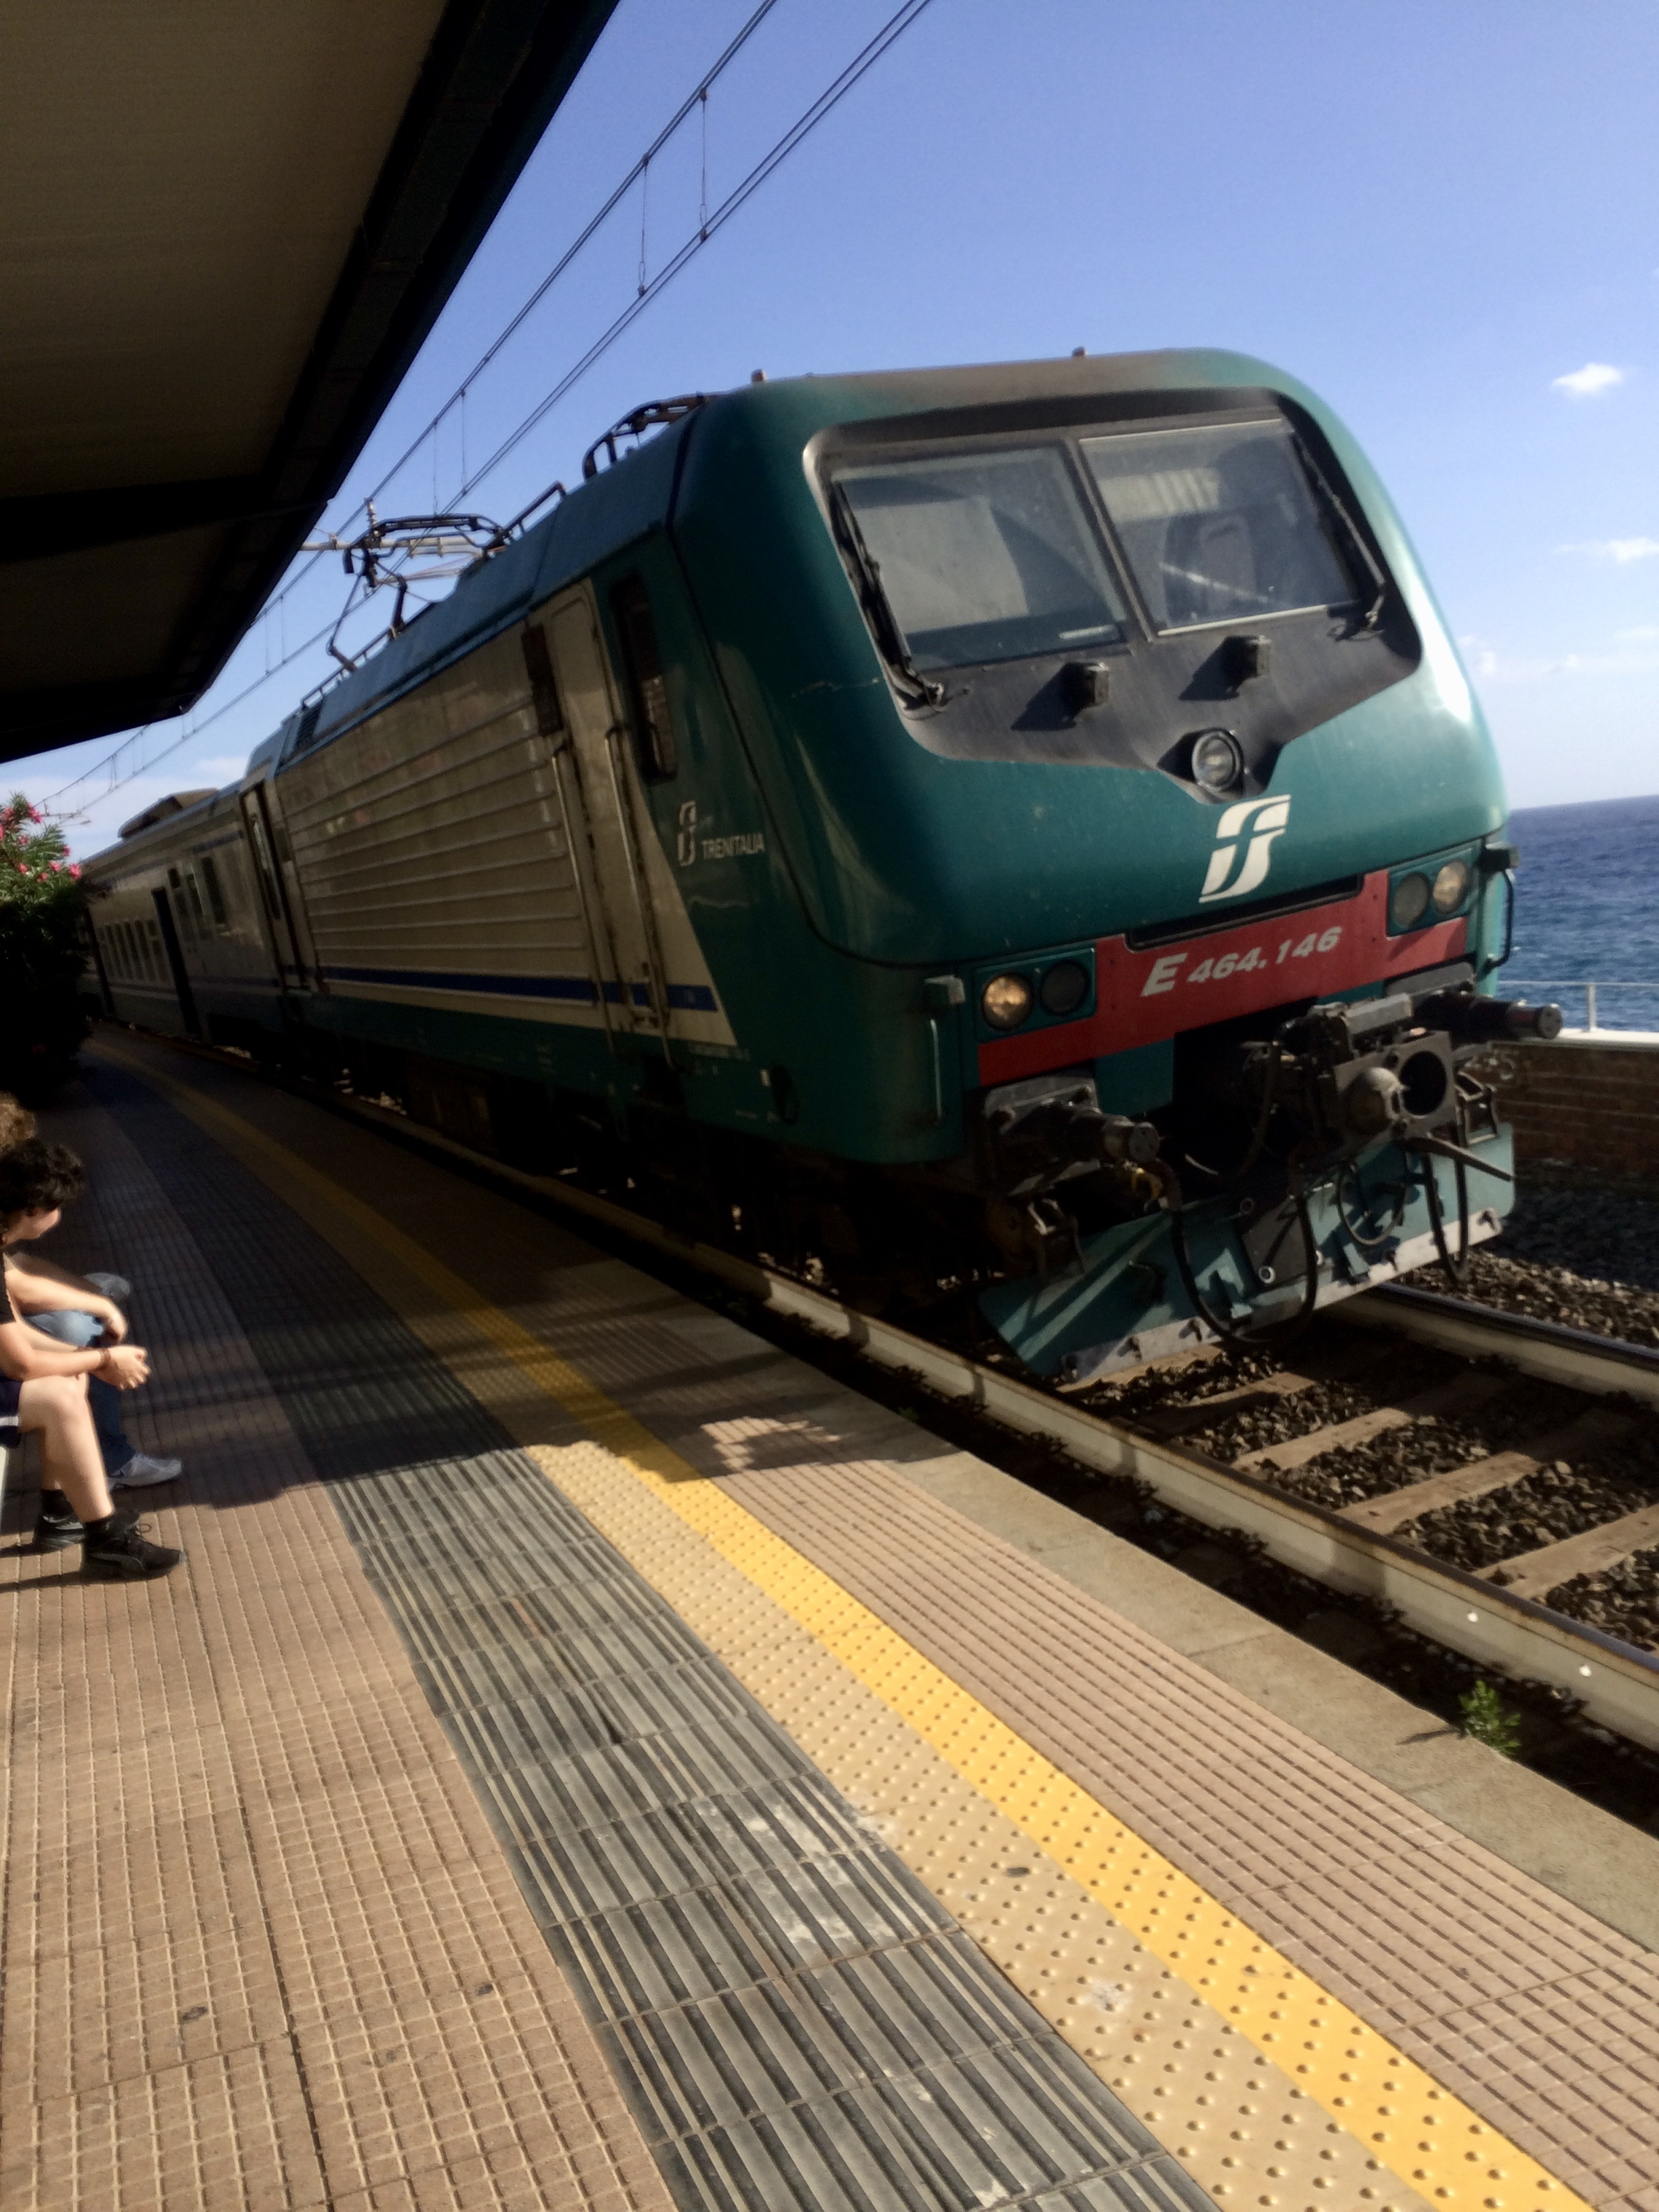 Waiting for the train with friends, in Italy, 2015.